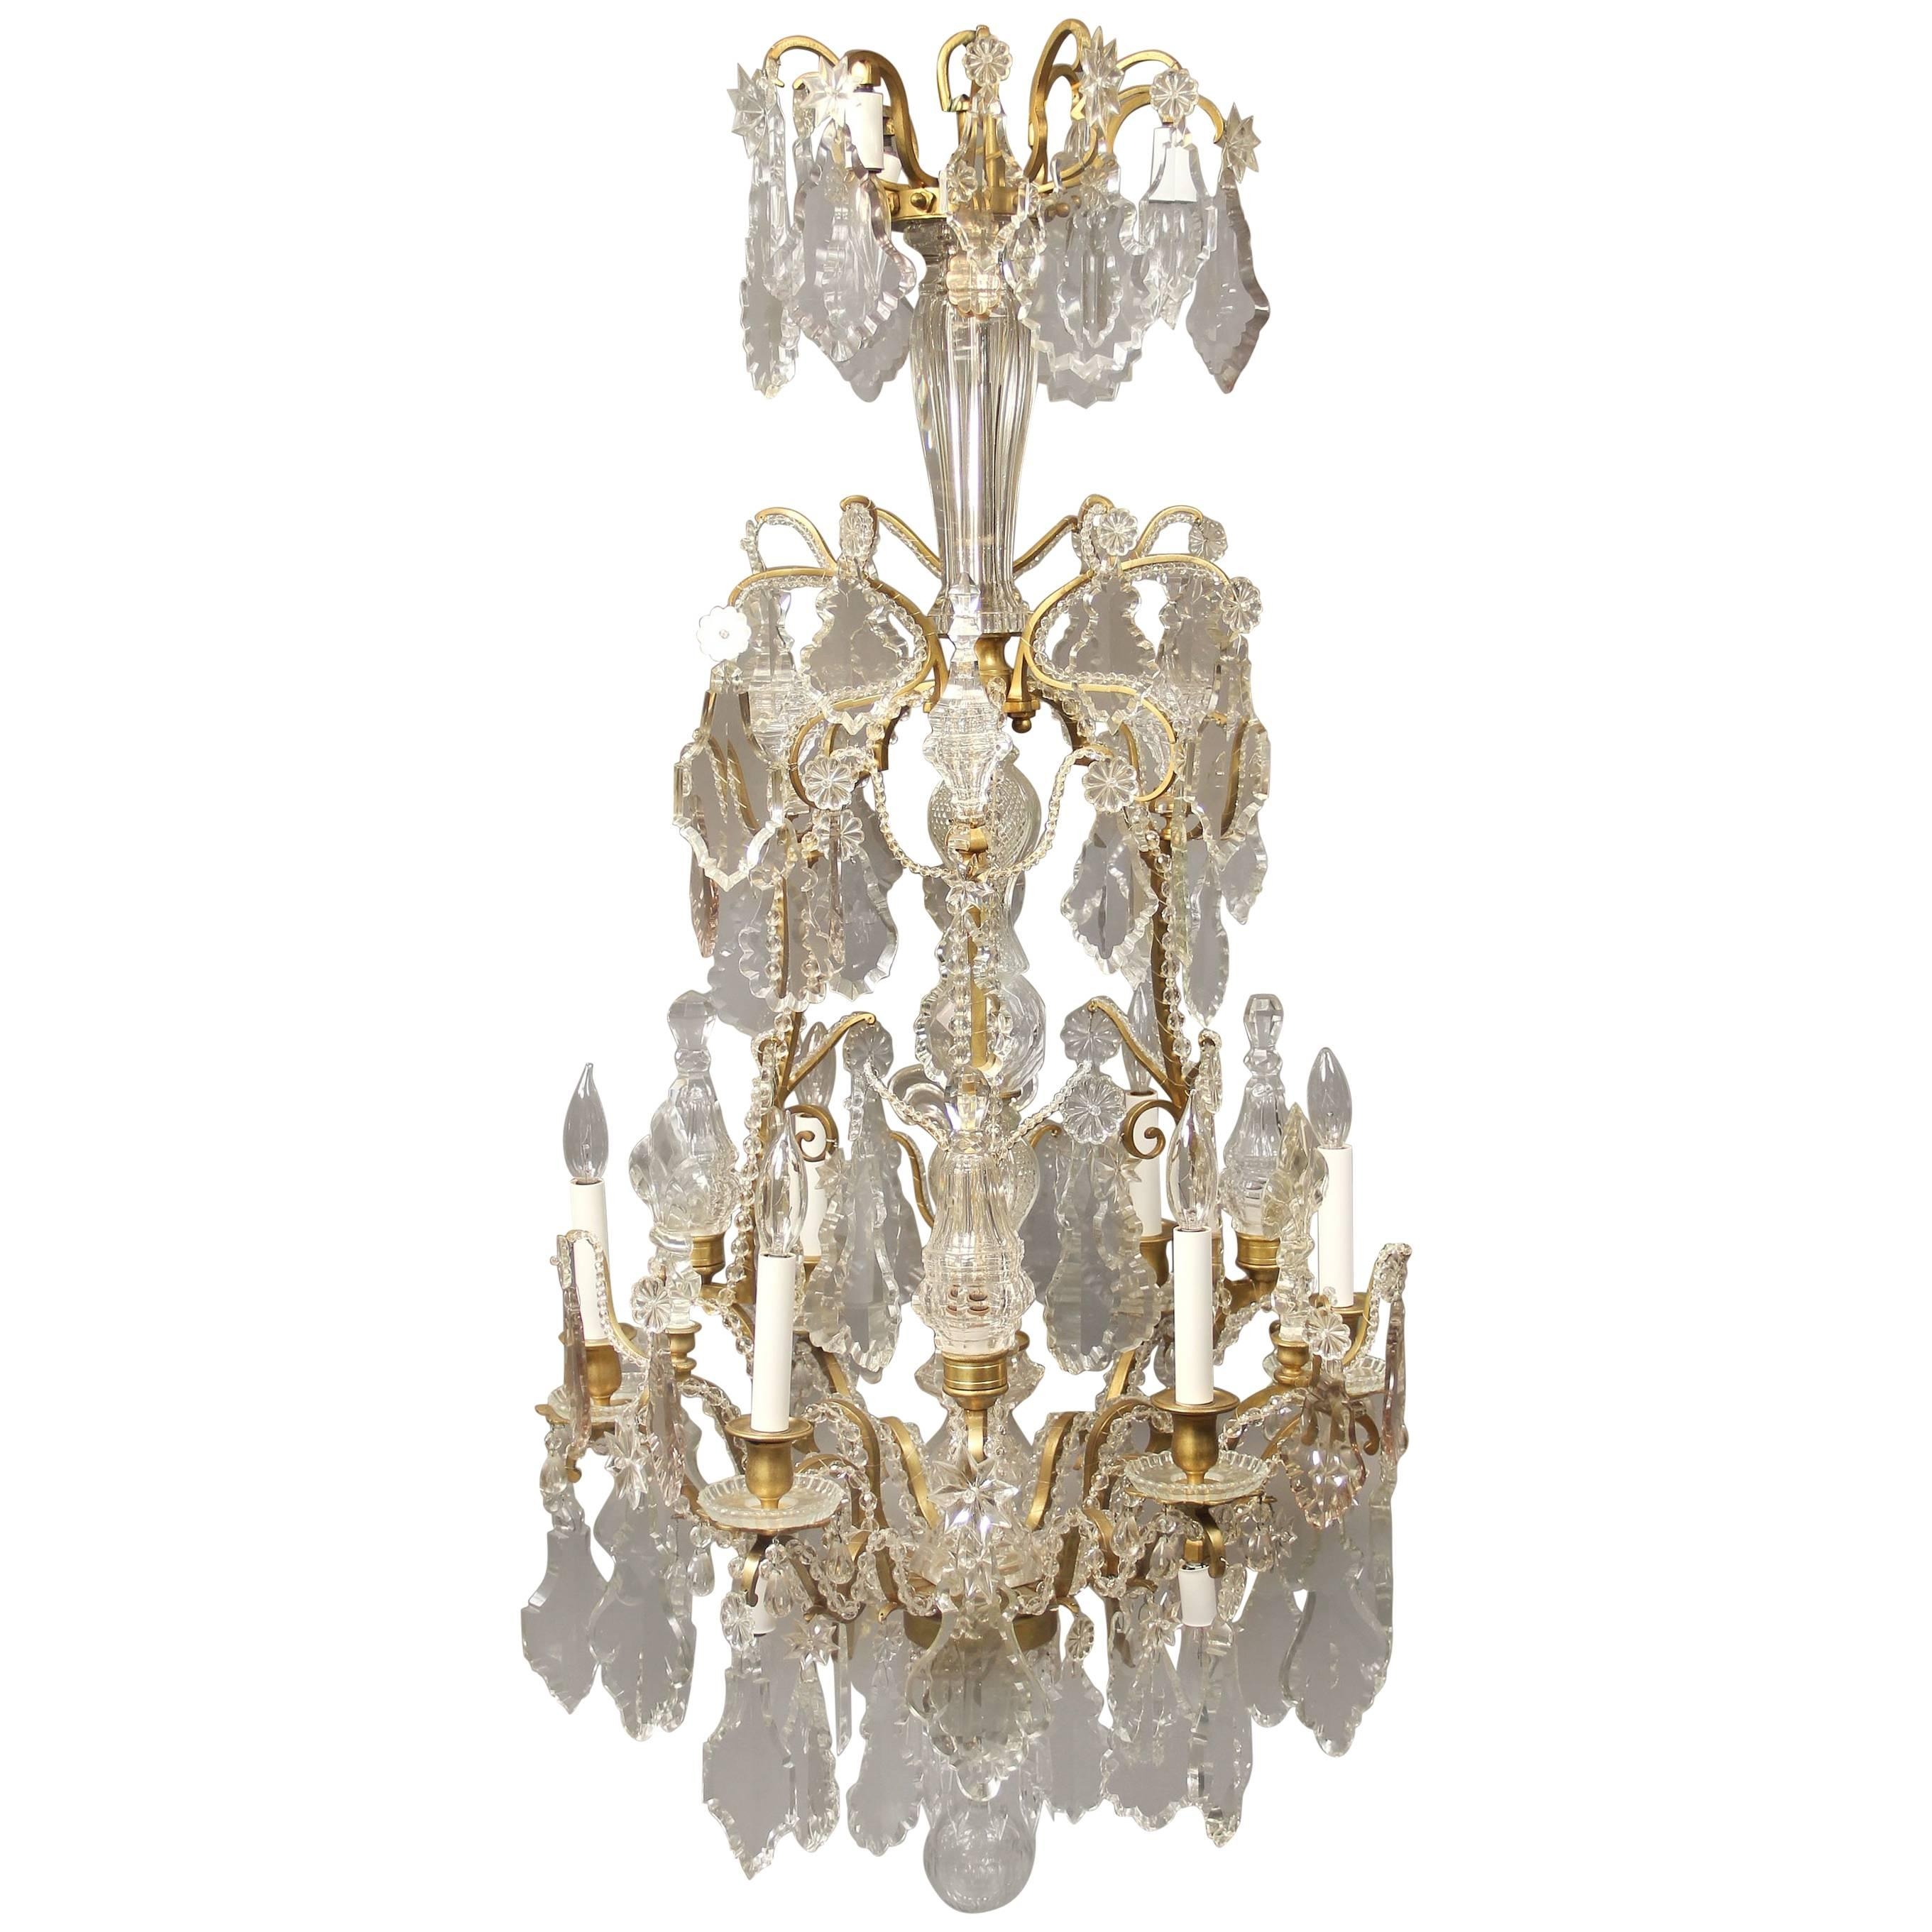 Elegant Late 19th Century Gilt Bronze and Baccarat Crystal Chandelier